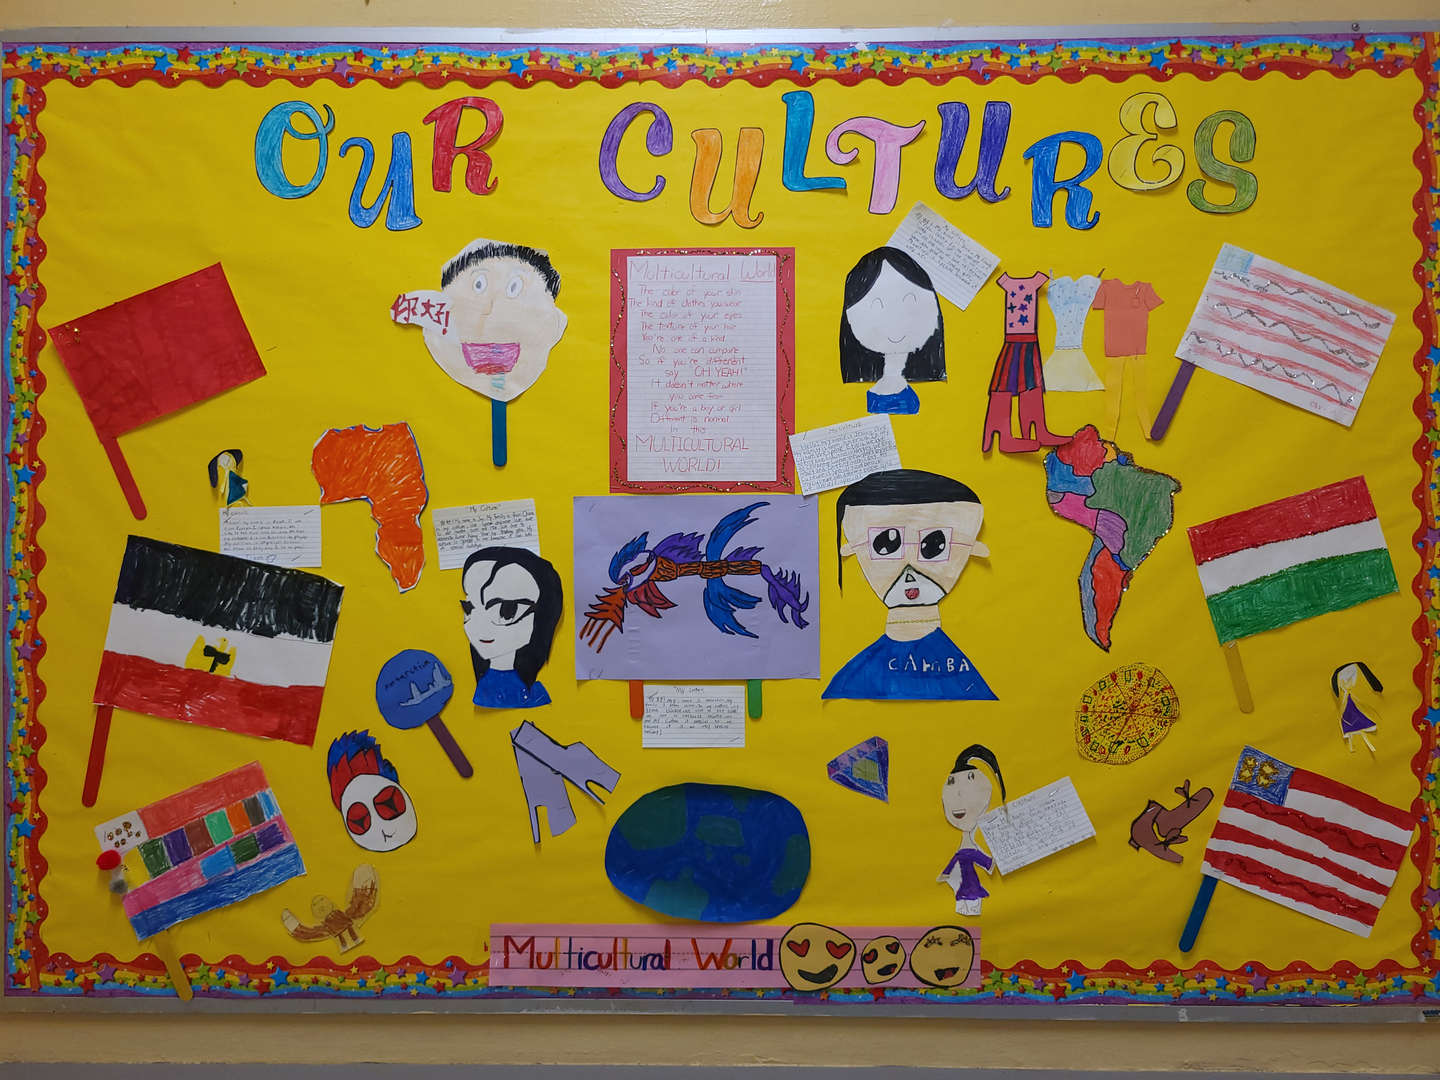 A school bulletin board representing student's cultures and heritages.